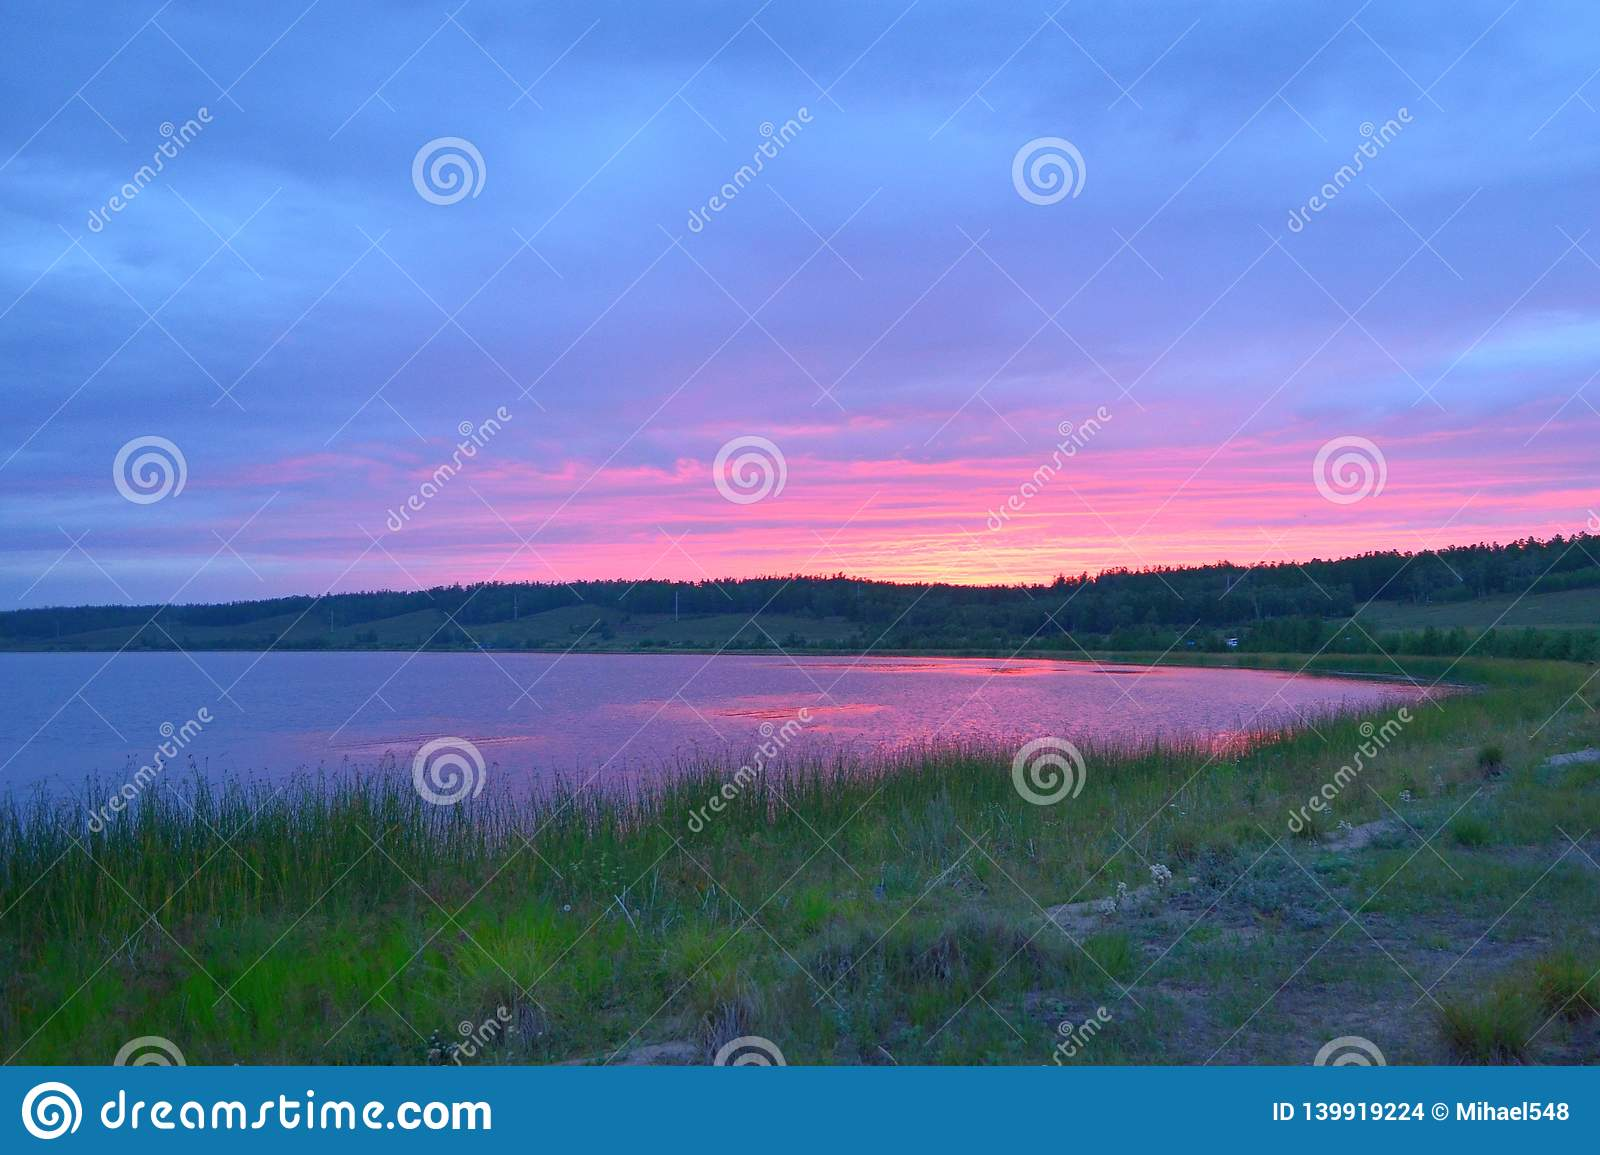 Quiet Evening And Sunset On The Lake Stock Photo - Image of